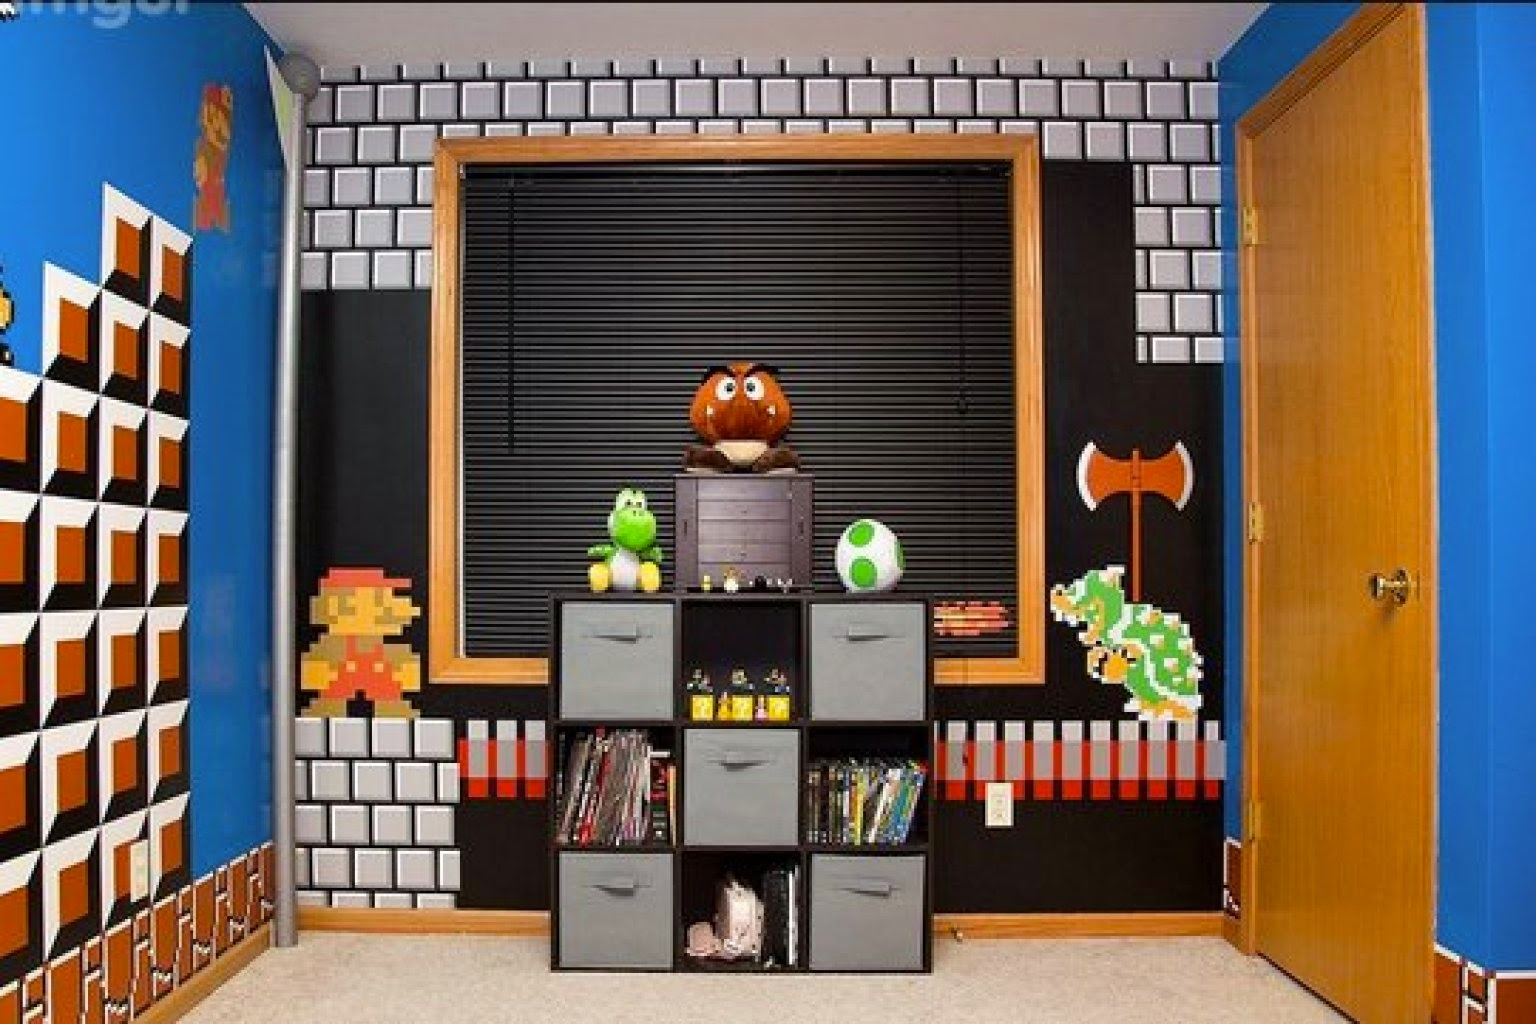 47 epic video game room decoration ideas for 2017 Game decoration